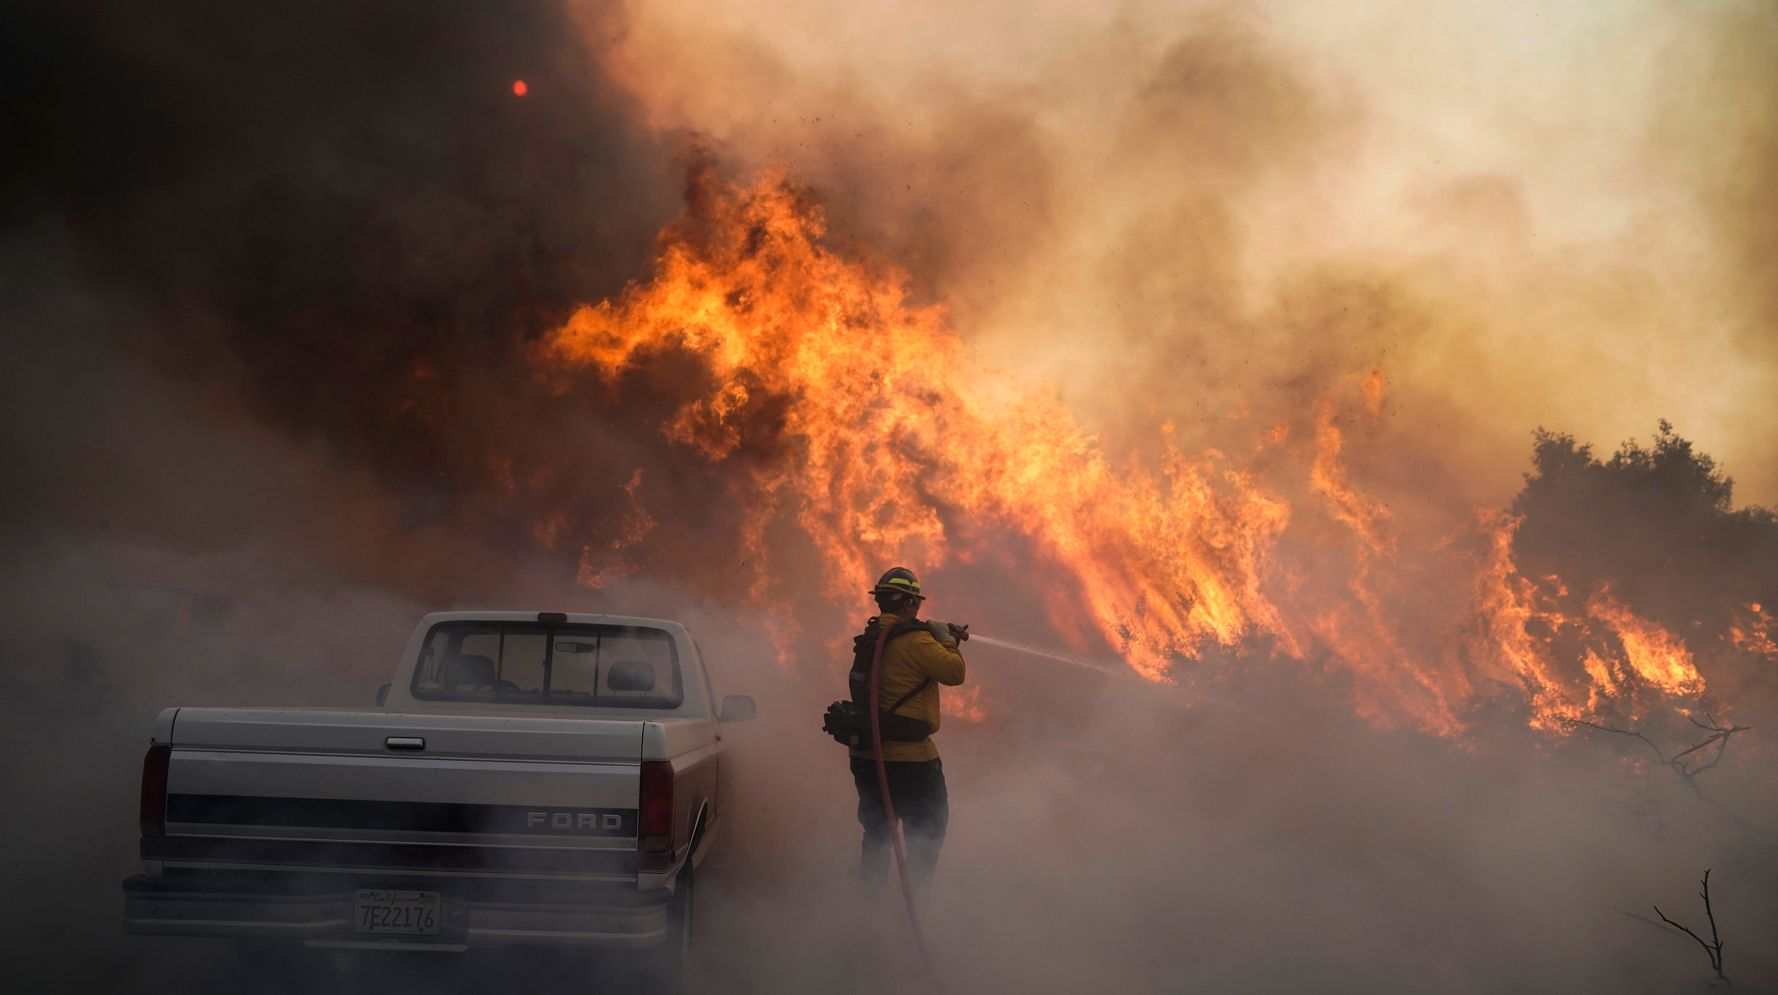 SoCal Utility May Have Sparked Wildfire That Forced 100,000 To Evacuate